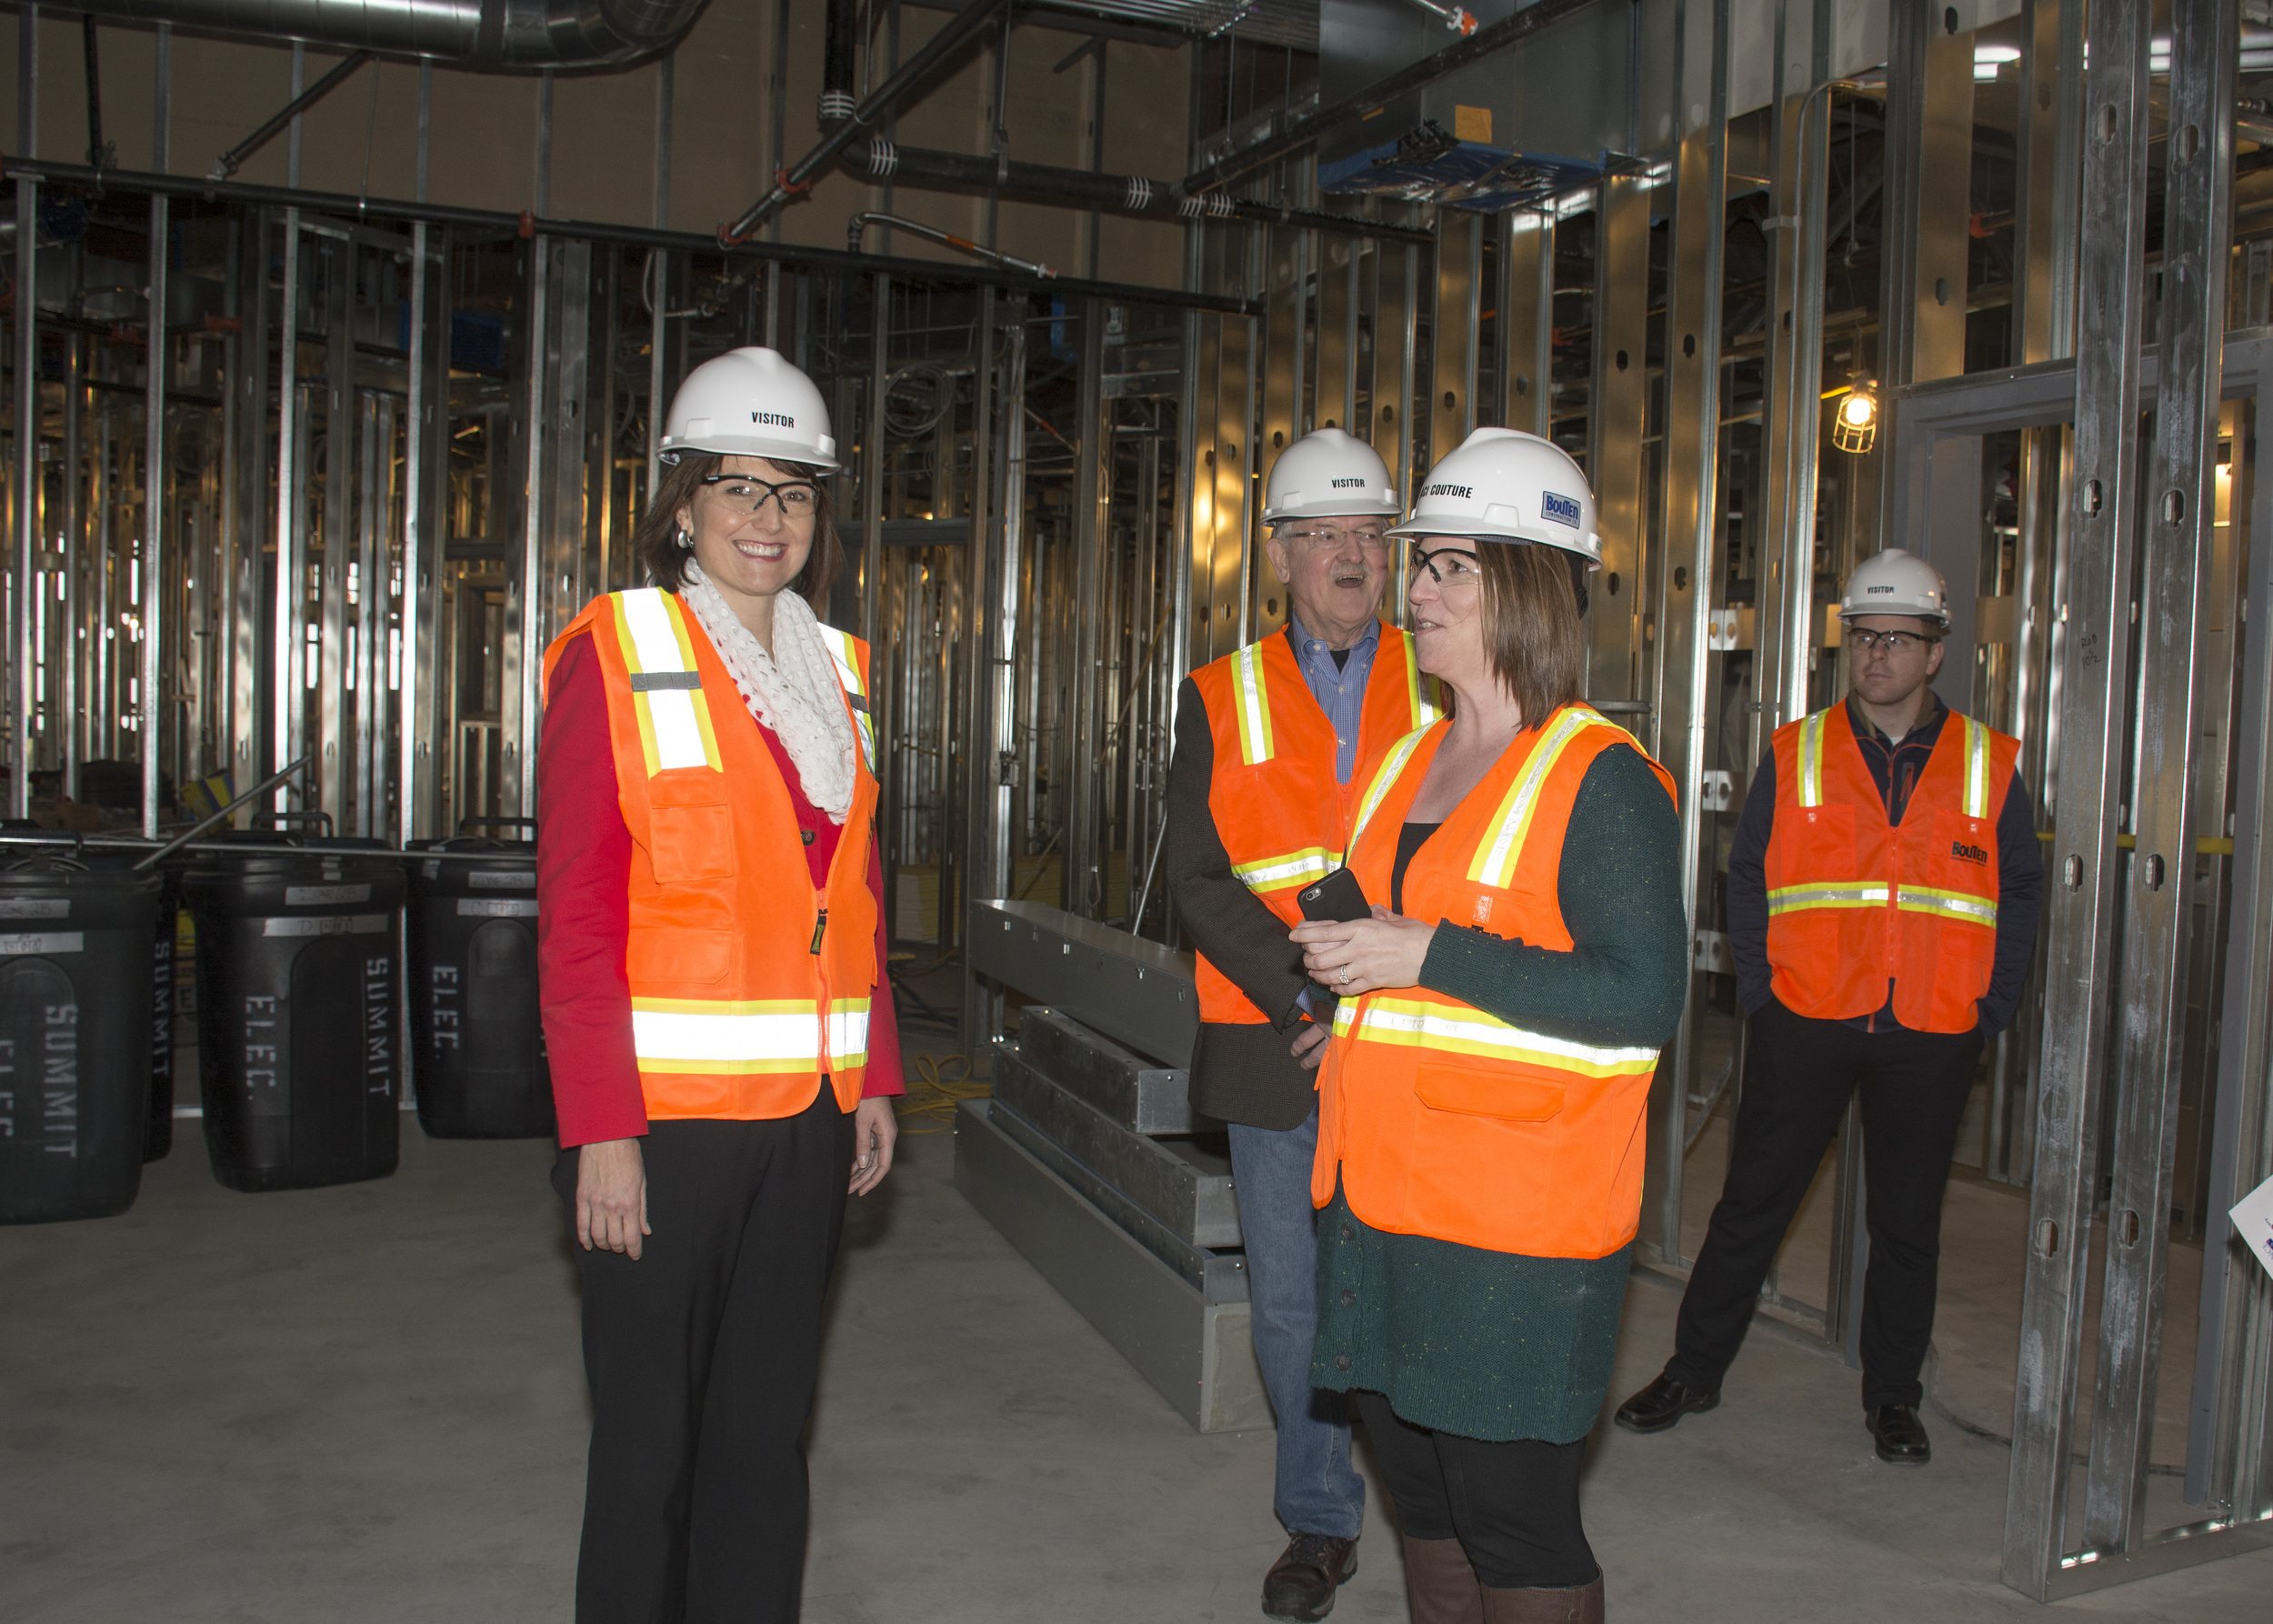 1-congresswoman-cathy-mcmorris-rodgers-visits-sthc-construction_6_24181239049_o.jpg